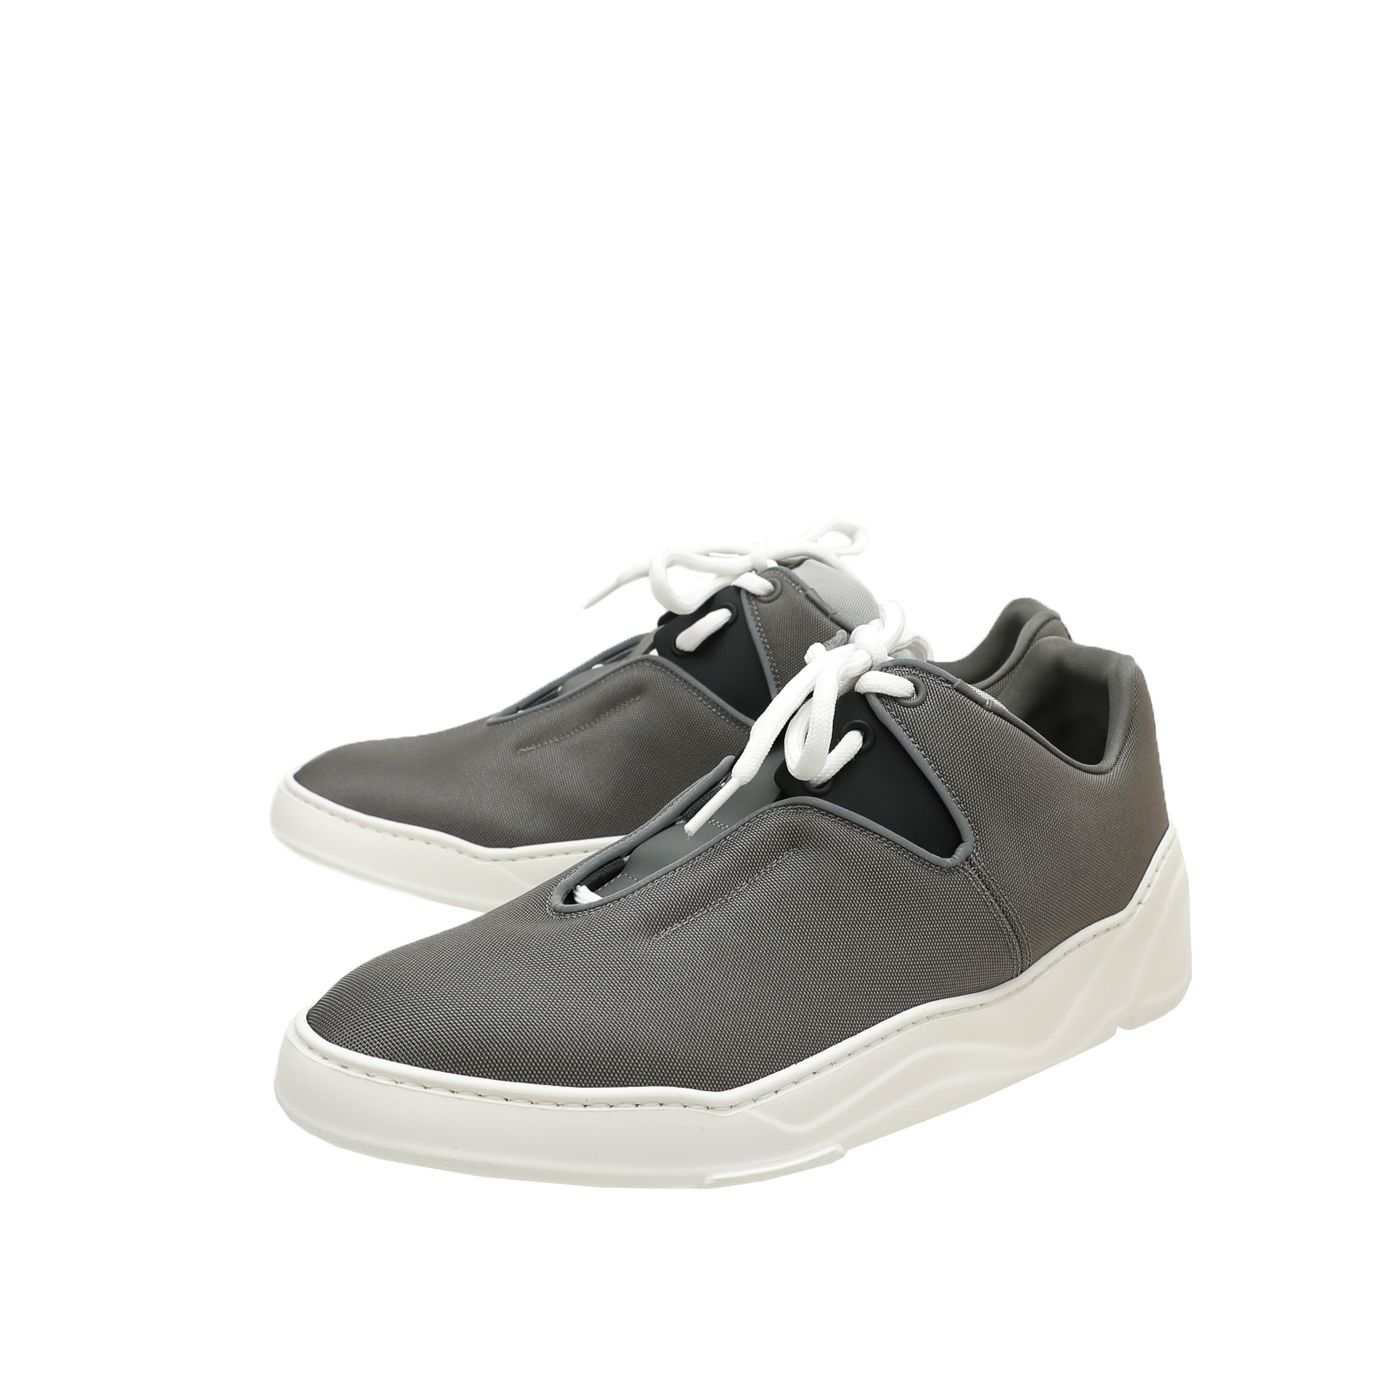 Christian Dior Bicolor Homme B17 Sneakers 41